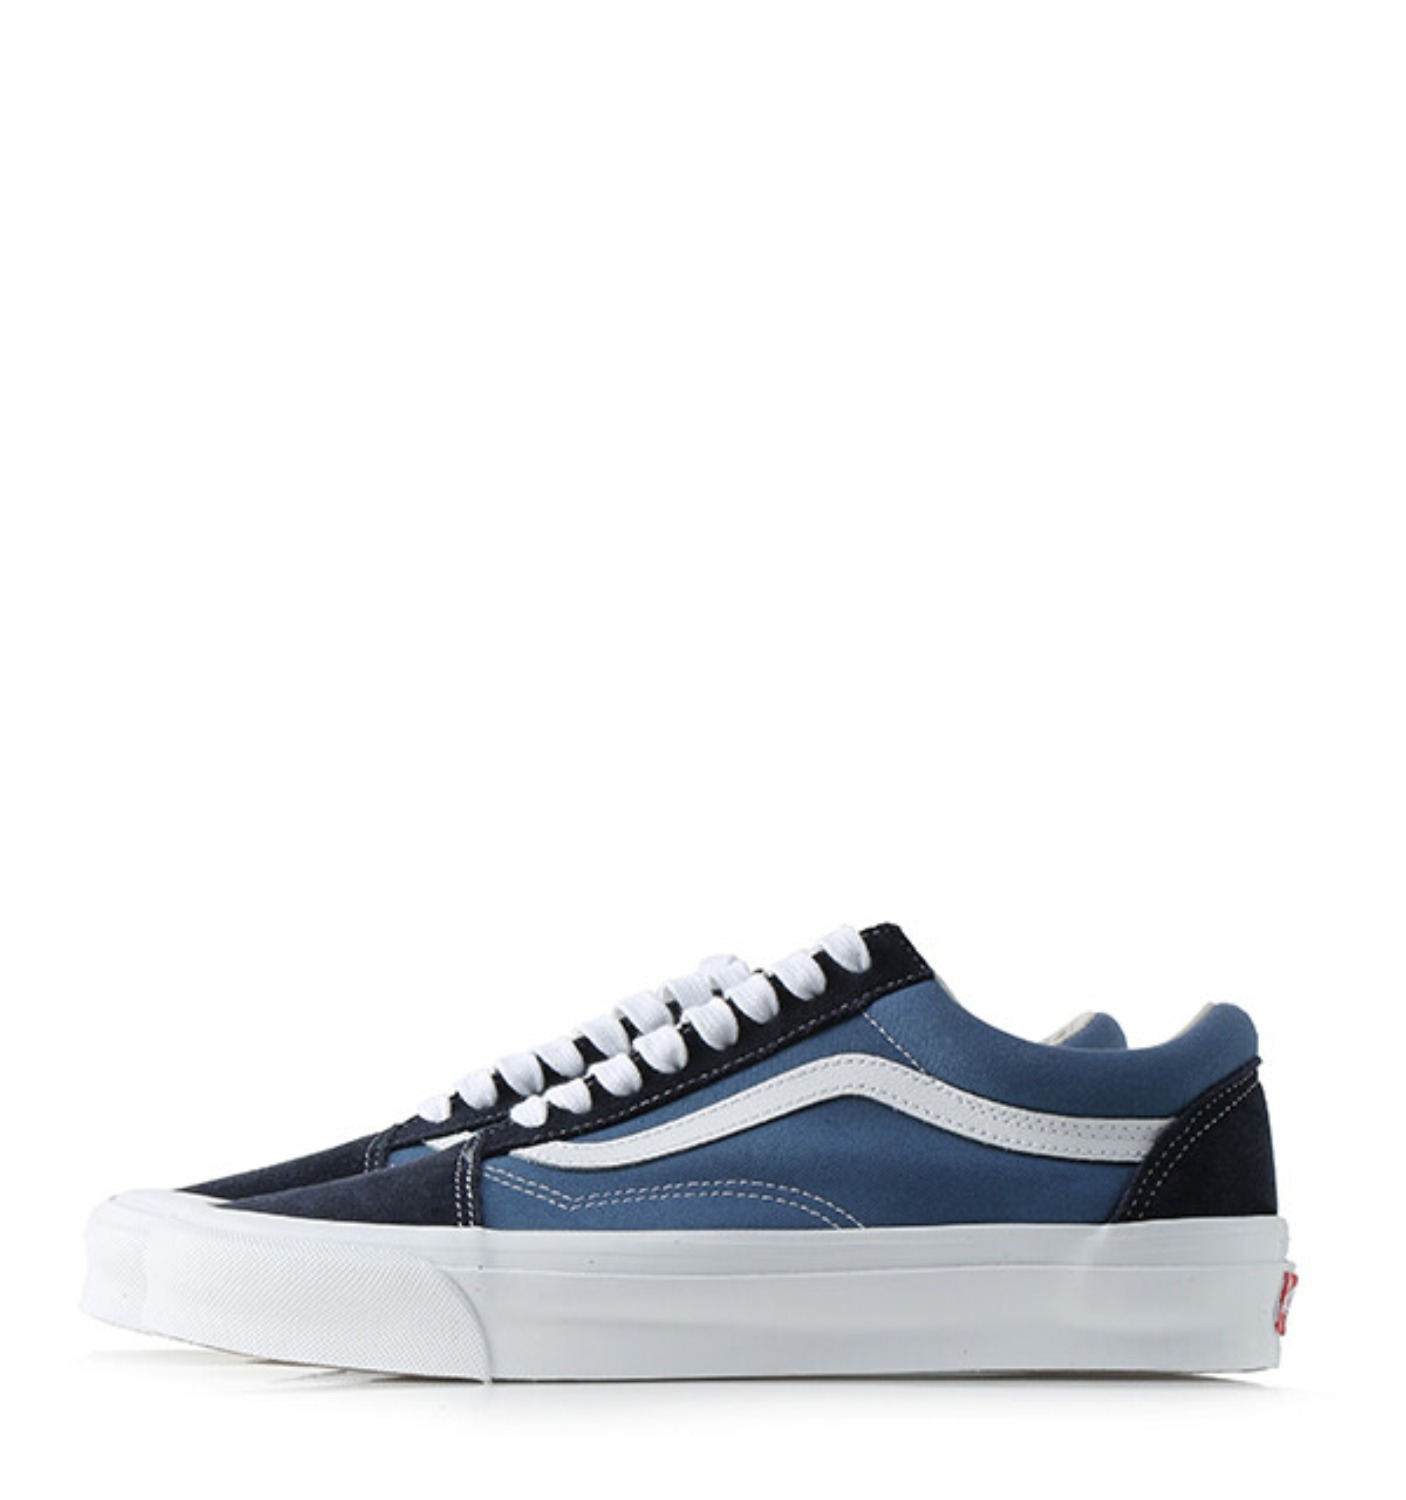 OG Old Skool LX(Suede/Canvas) Navy/STV Navy